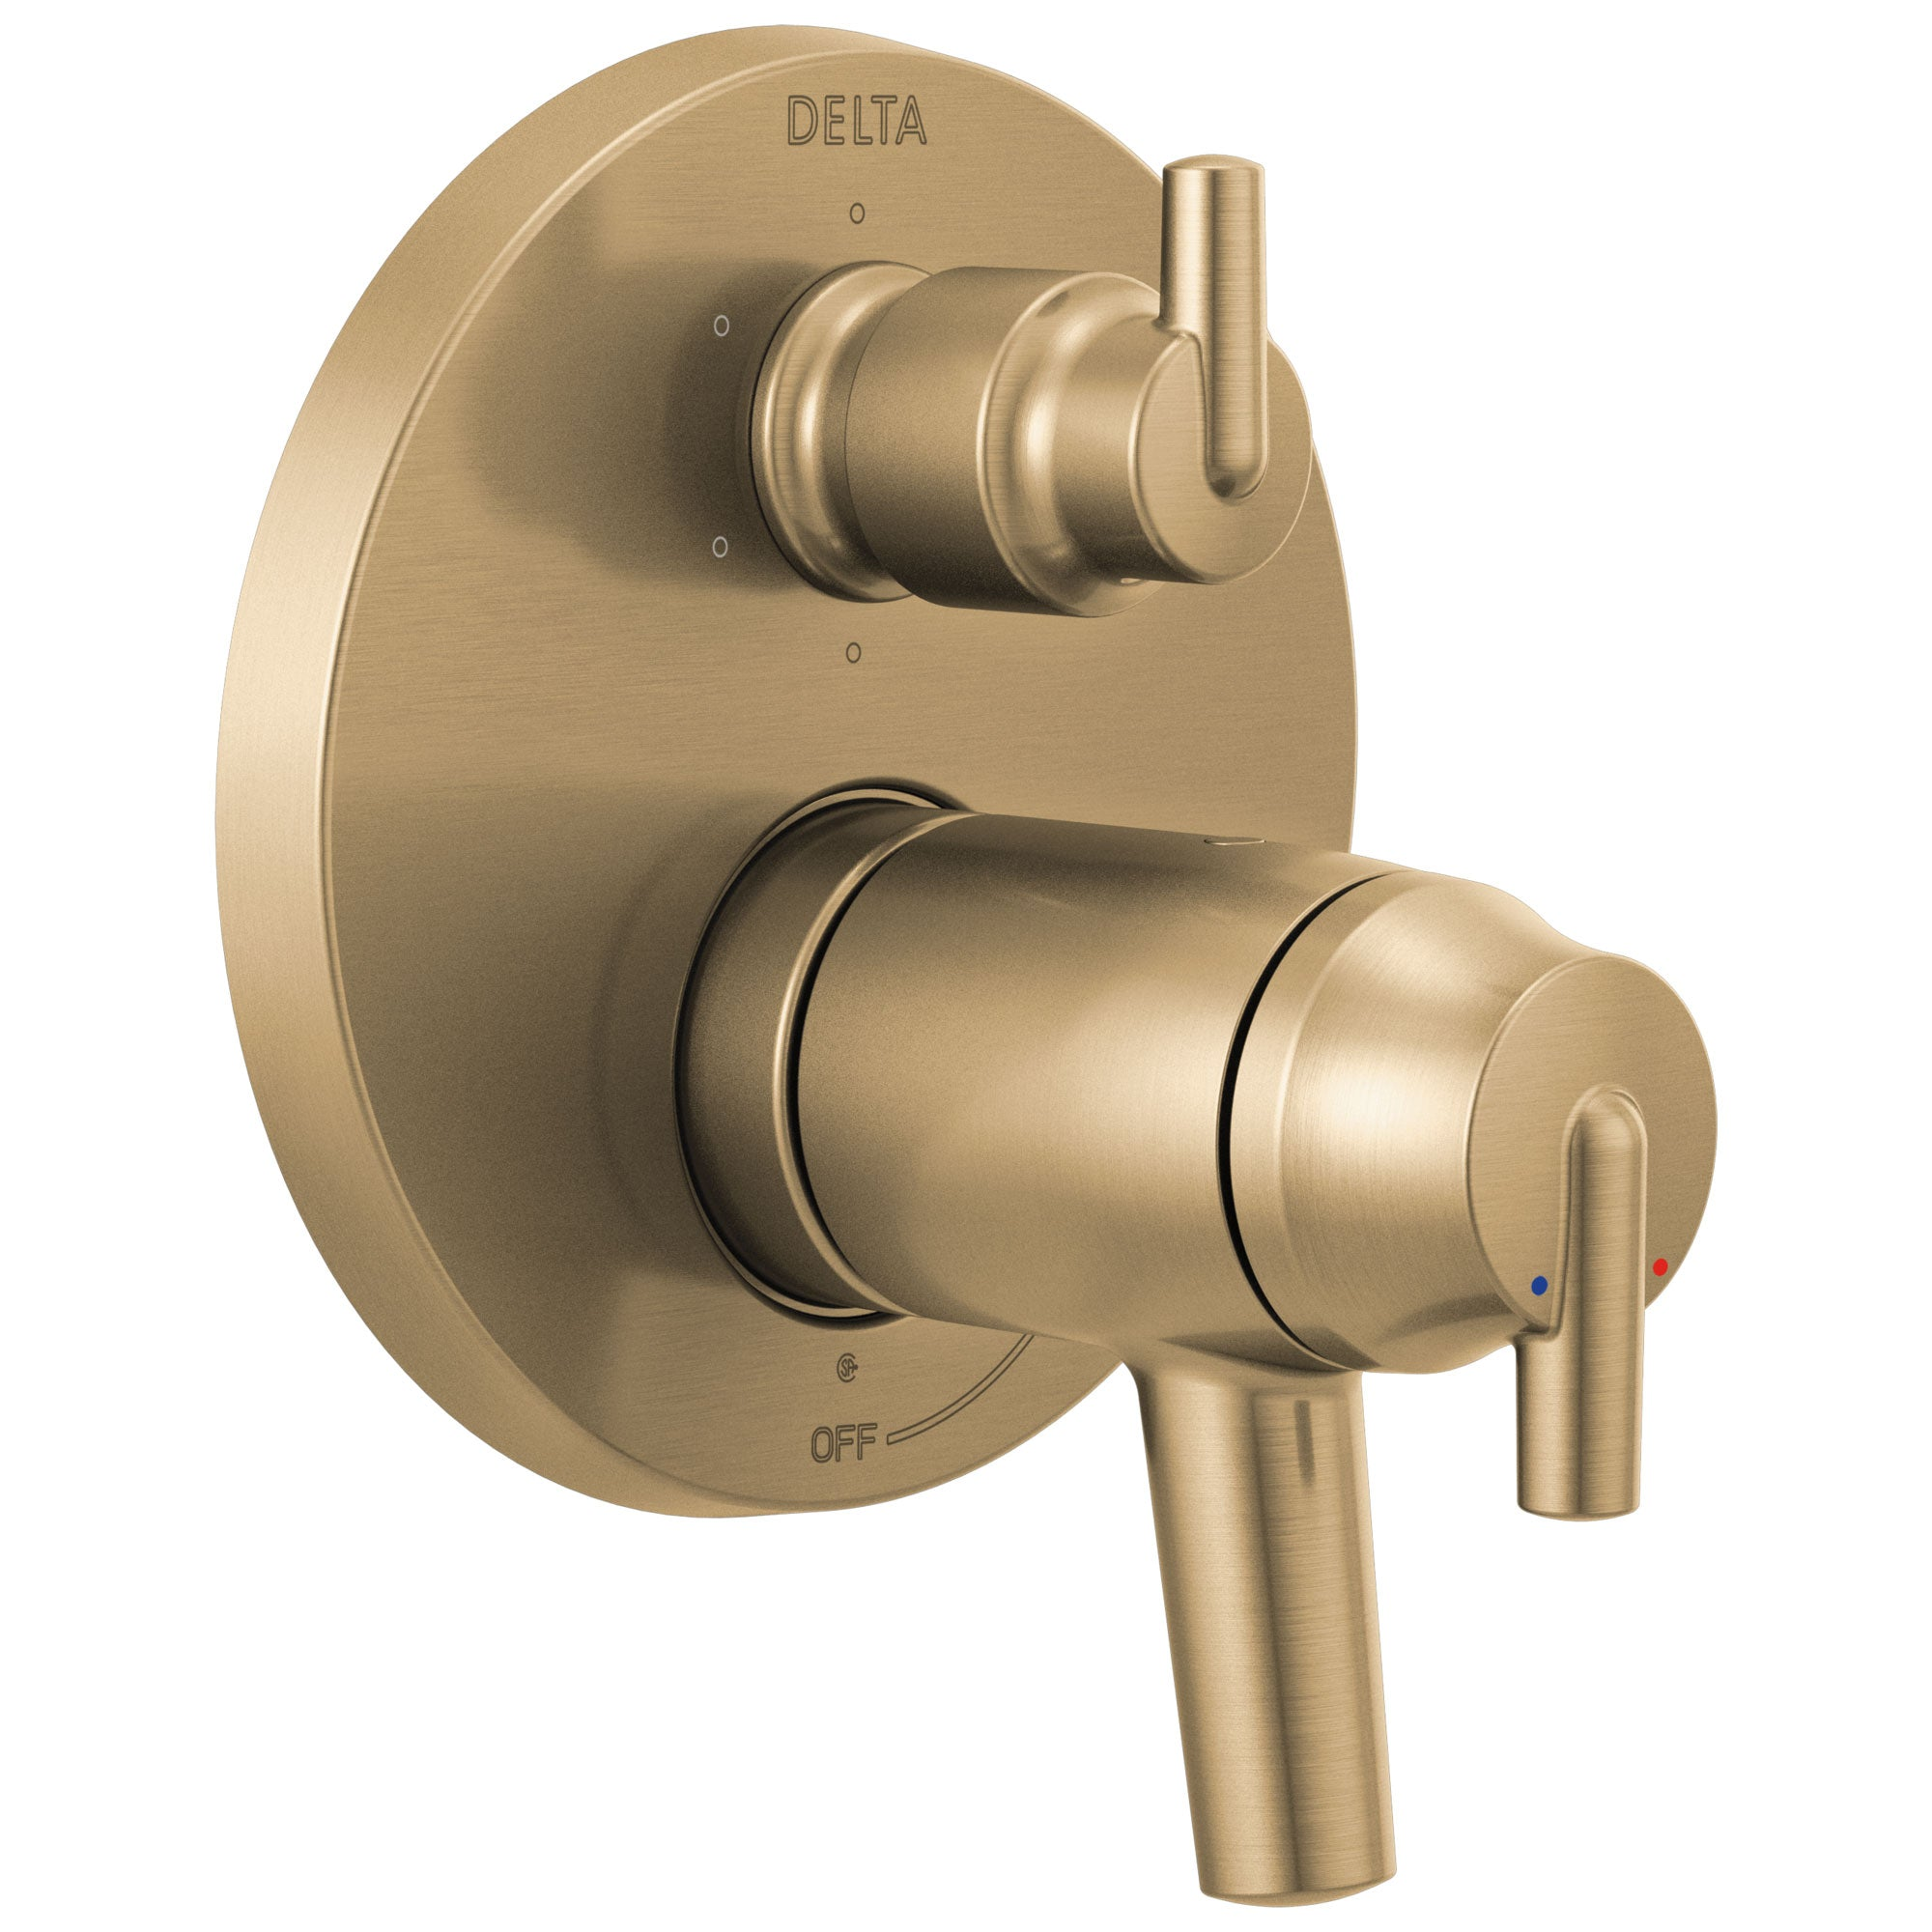 Delta Trinsic Champagne Bronze Contemporary Thermostatic Shower System Control with 6-Setting Integrated Diverter Includes Valve and Handles D3673V